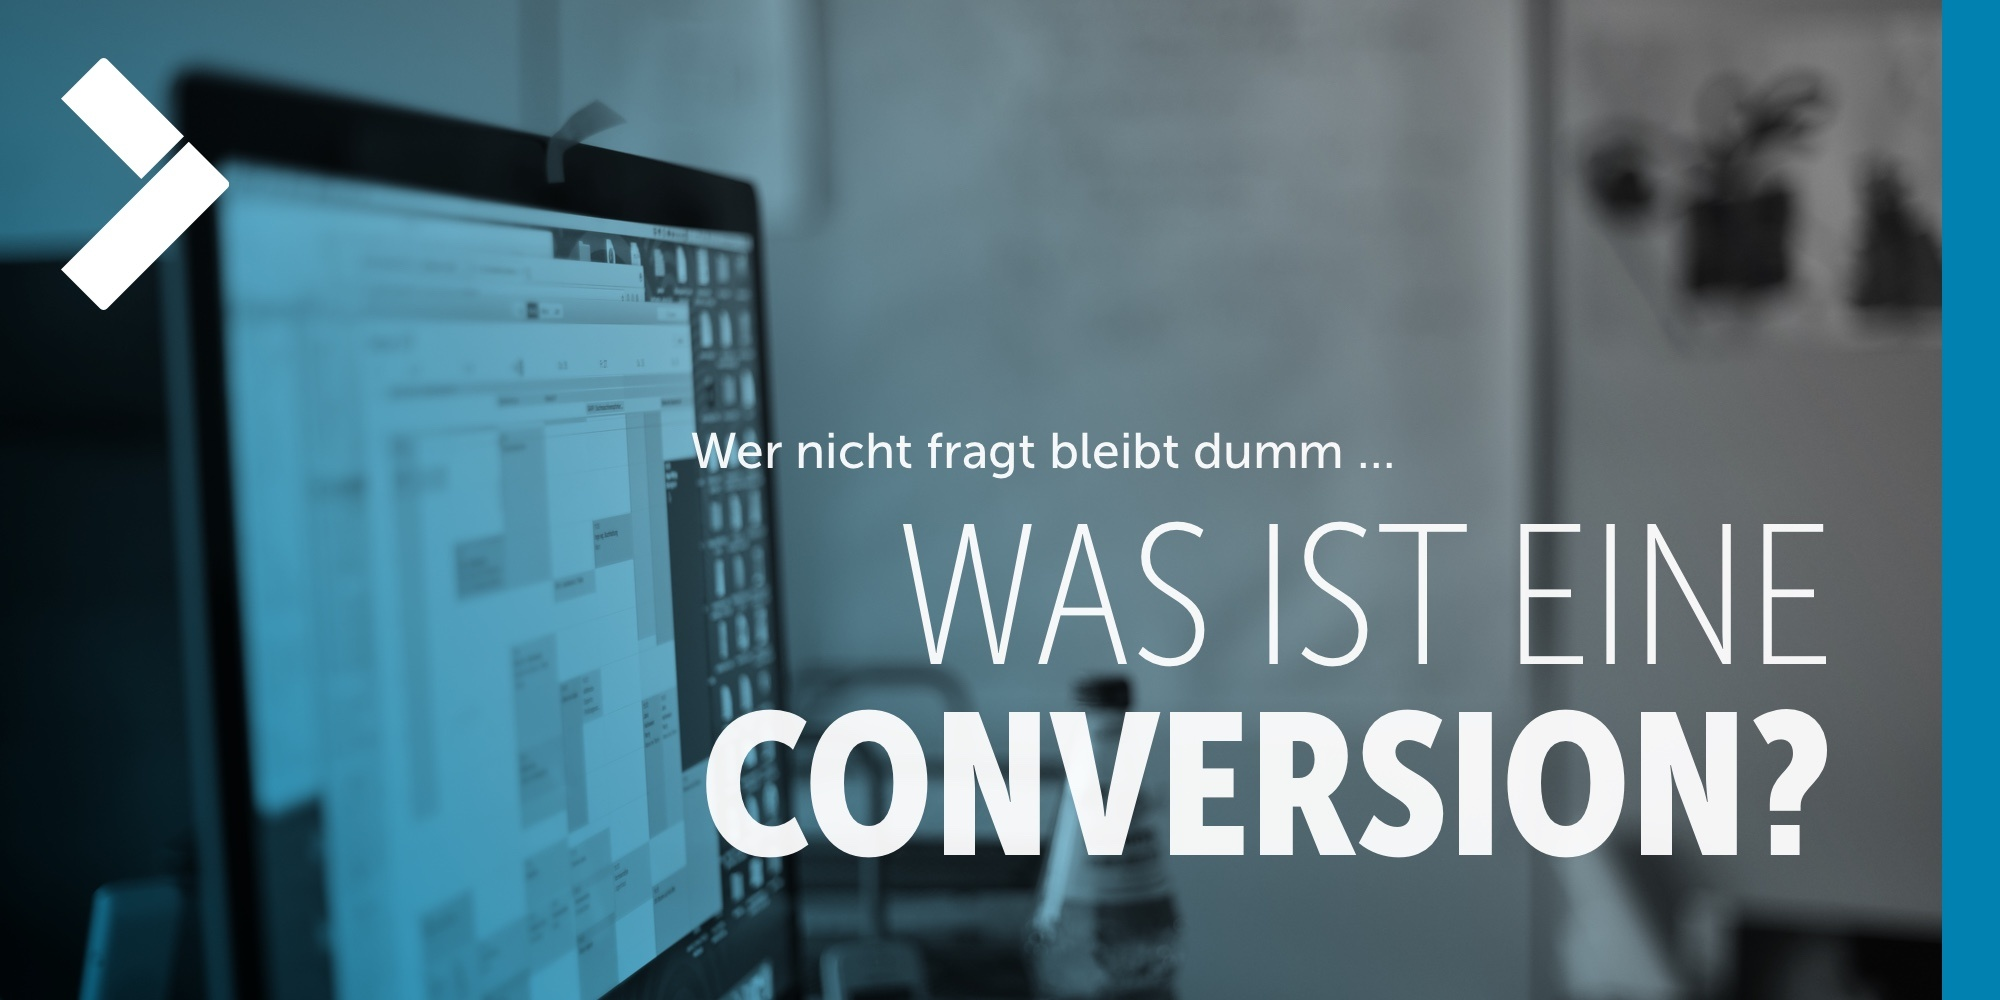 Living-the-net-LTN-Conversion-Online-Marketing-Digitalisierung-Mittelstand